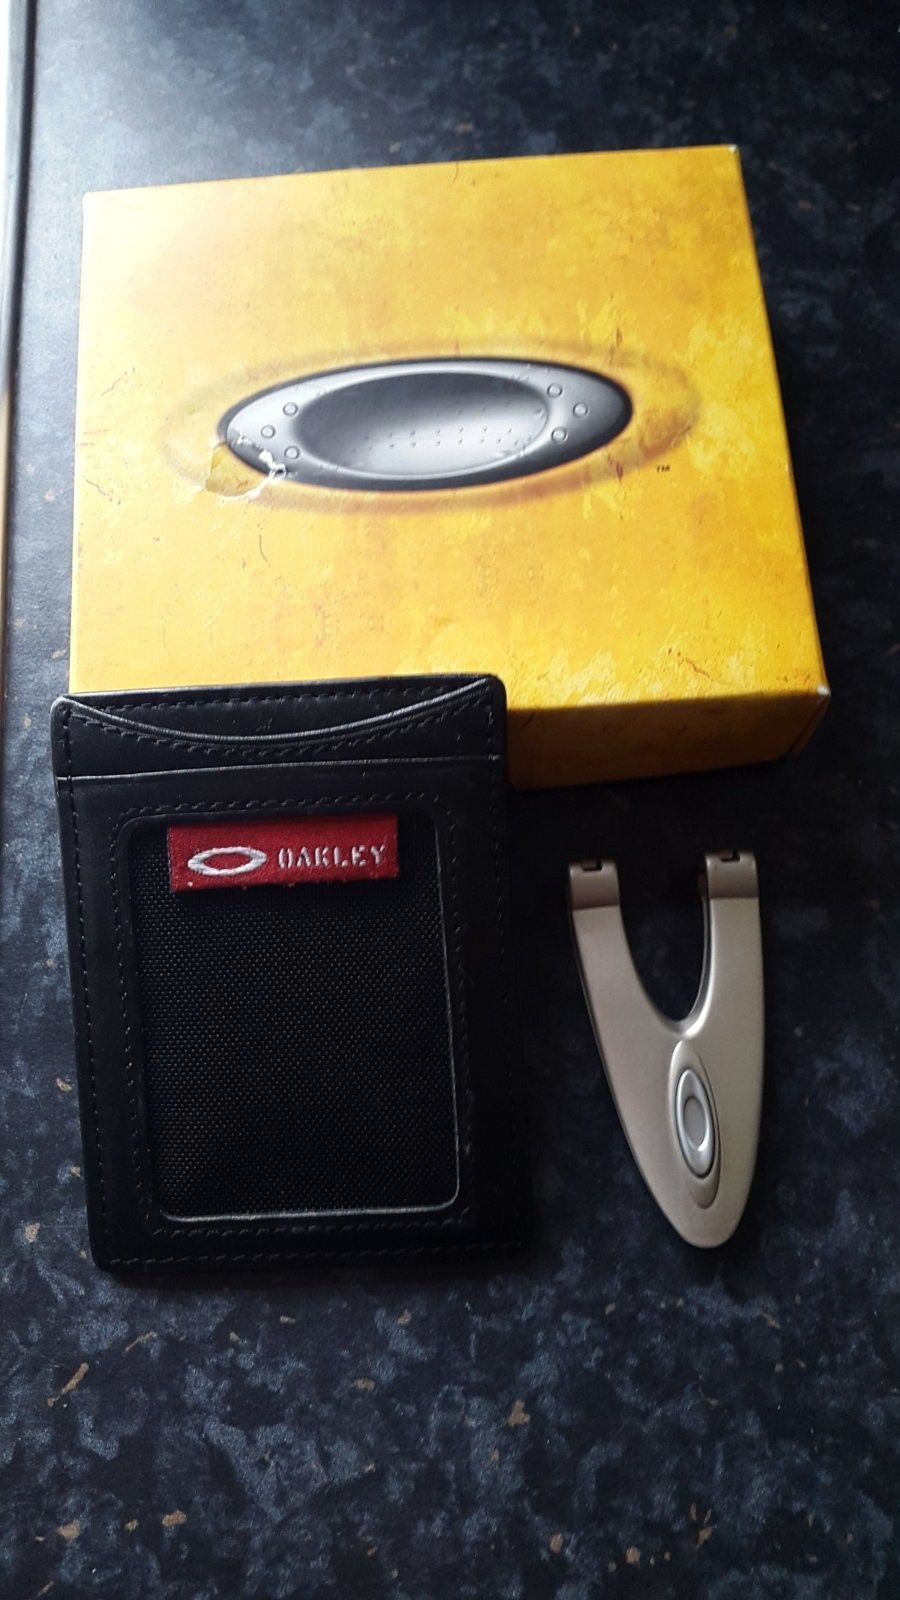 Hello From A Newby.. Wallet Wanted - 20160223_142259.jpg